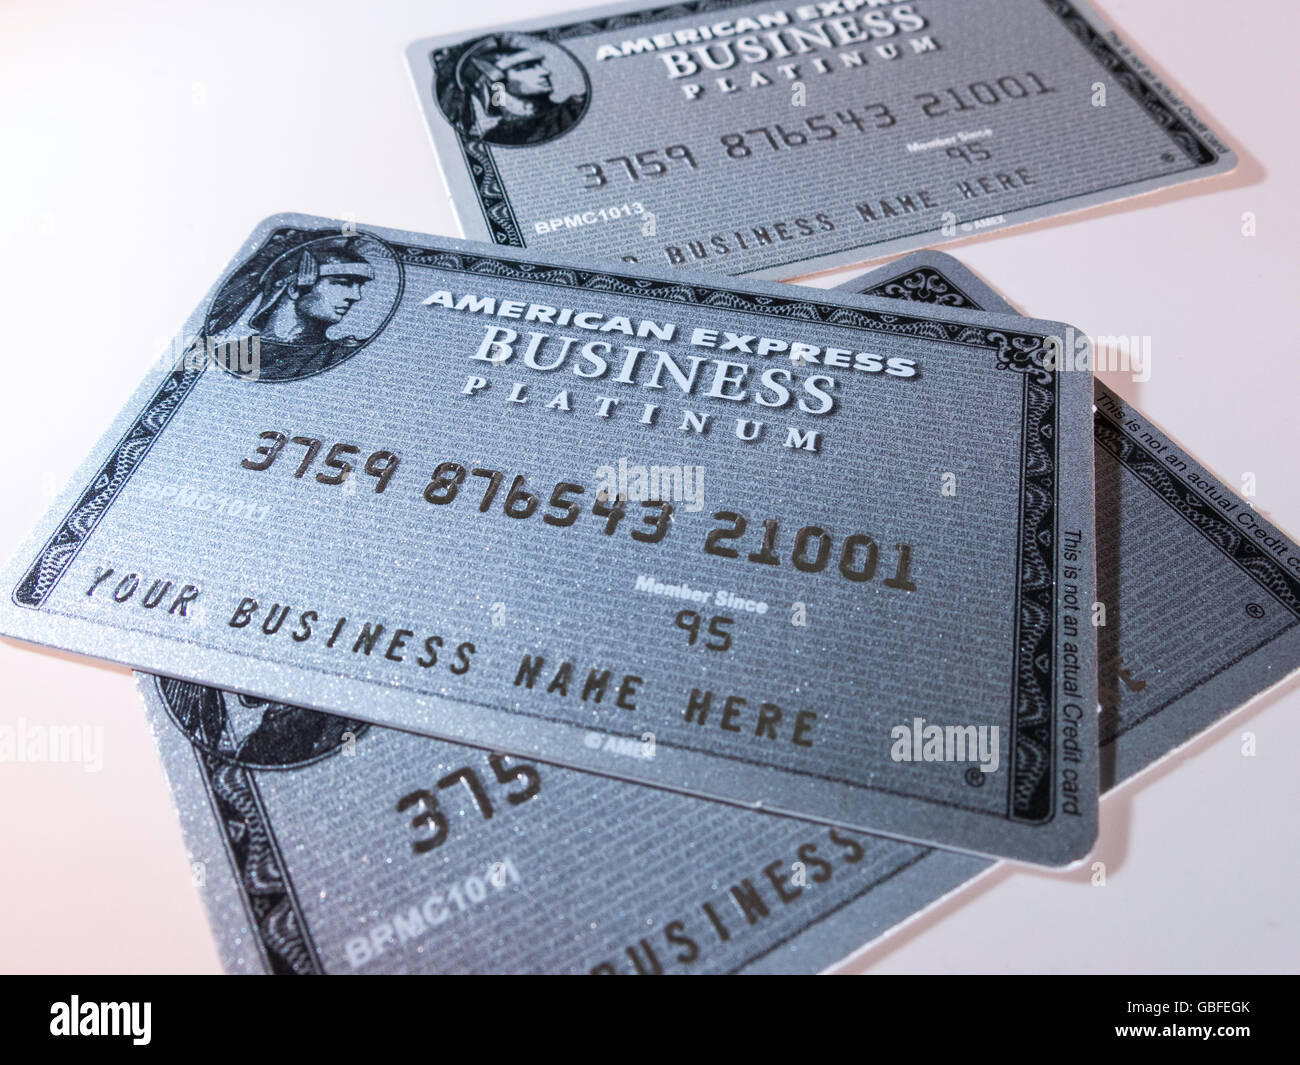 american express business credit cards - American Express Business Credit Card